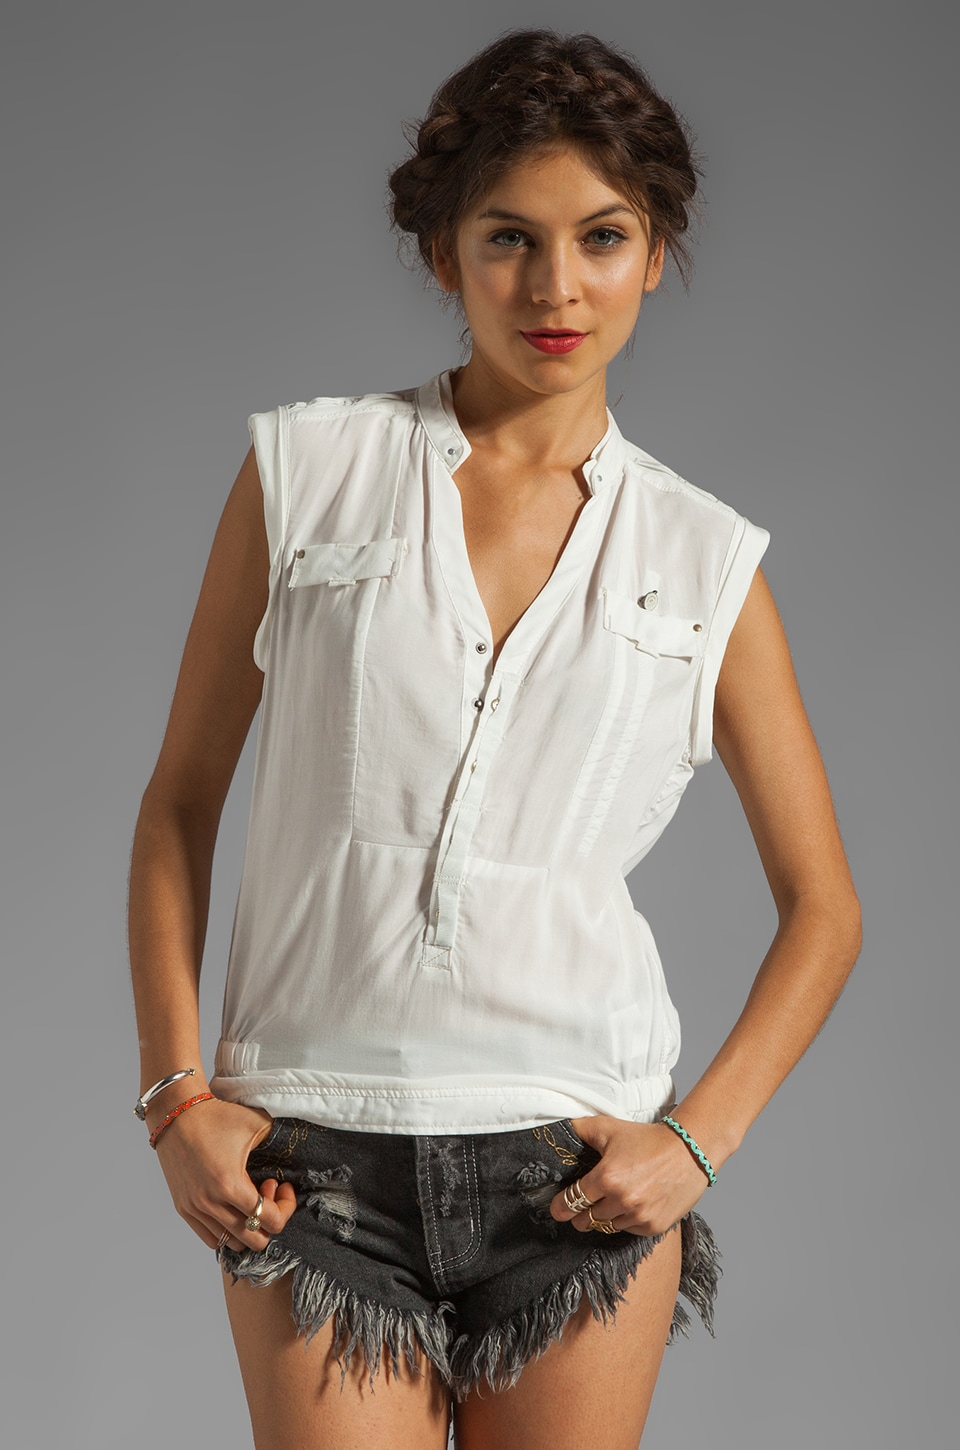 G-Star Tooper Crusader Sleeveless Top in Milk